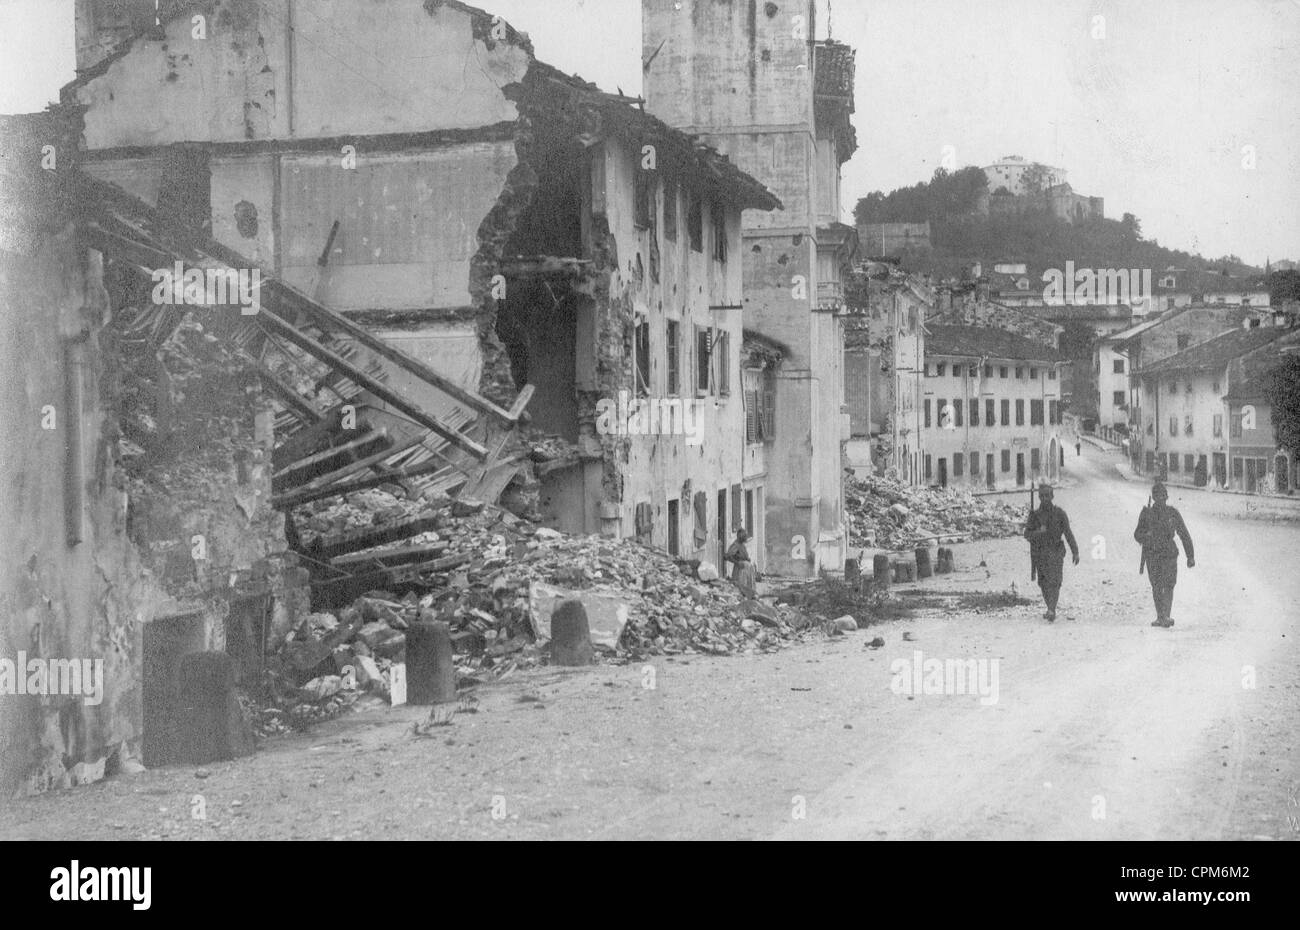 Destroyed Goerz in WWI, 1918 - Stock Image